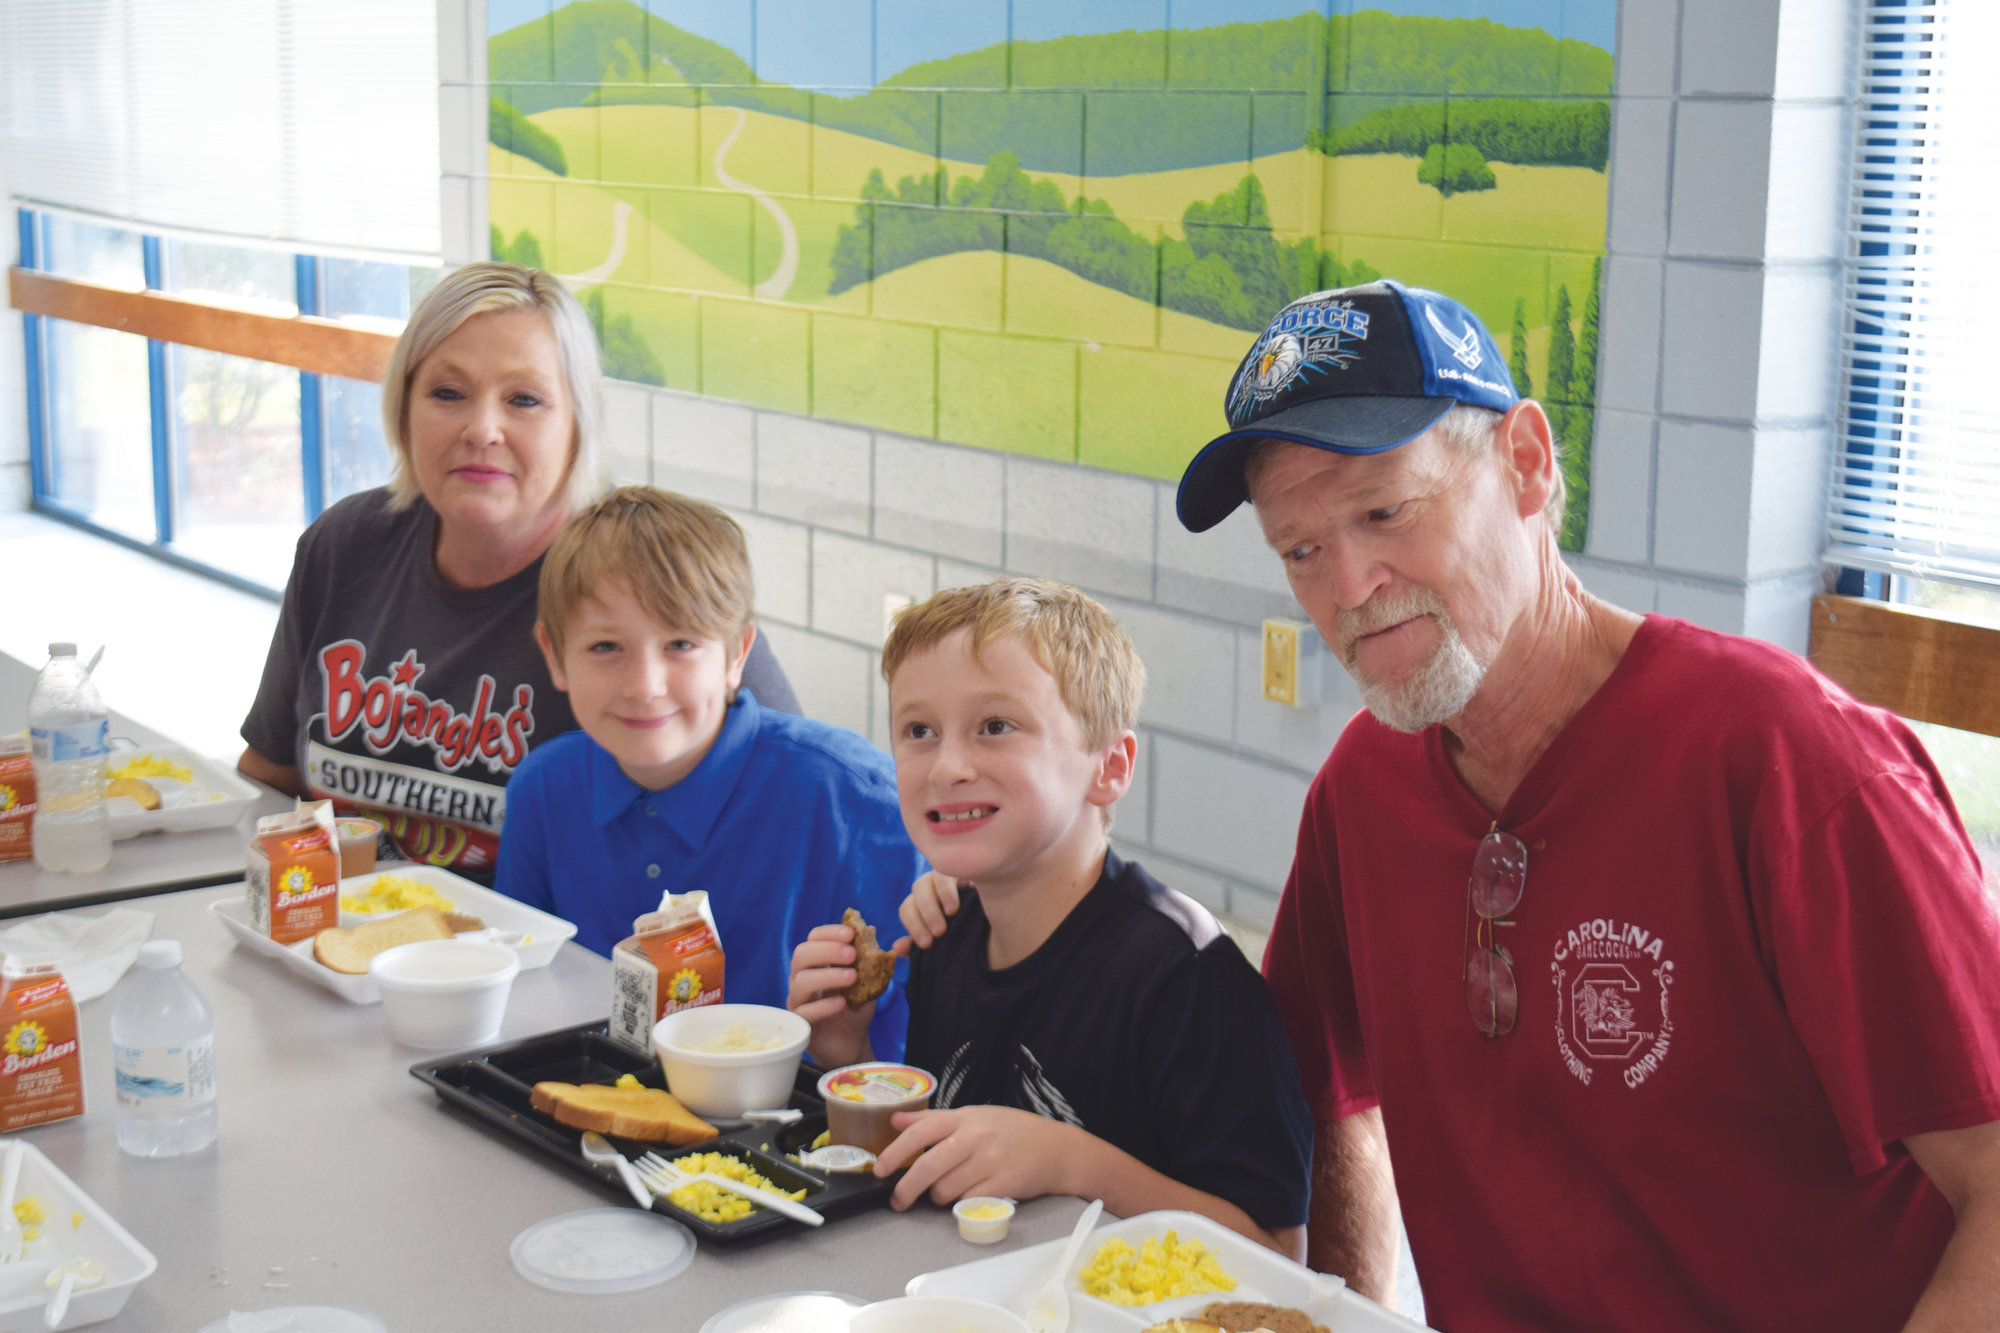 Steve and Kim Meyer eat with grandchildren Ethan Cox and Riley Mosley.